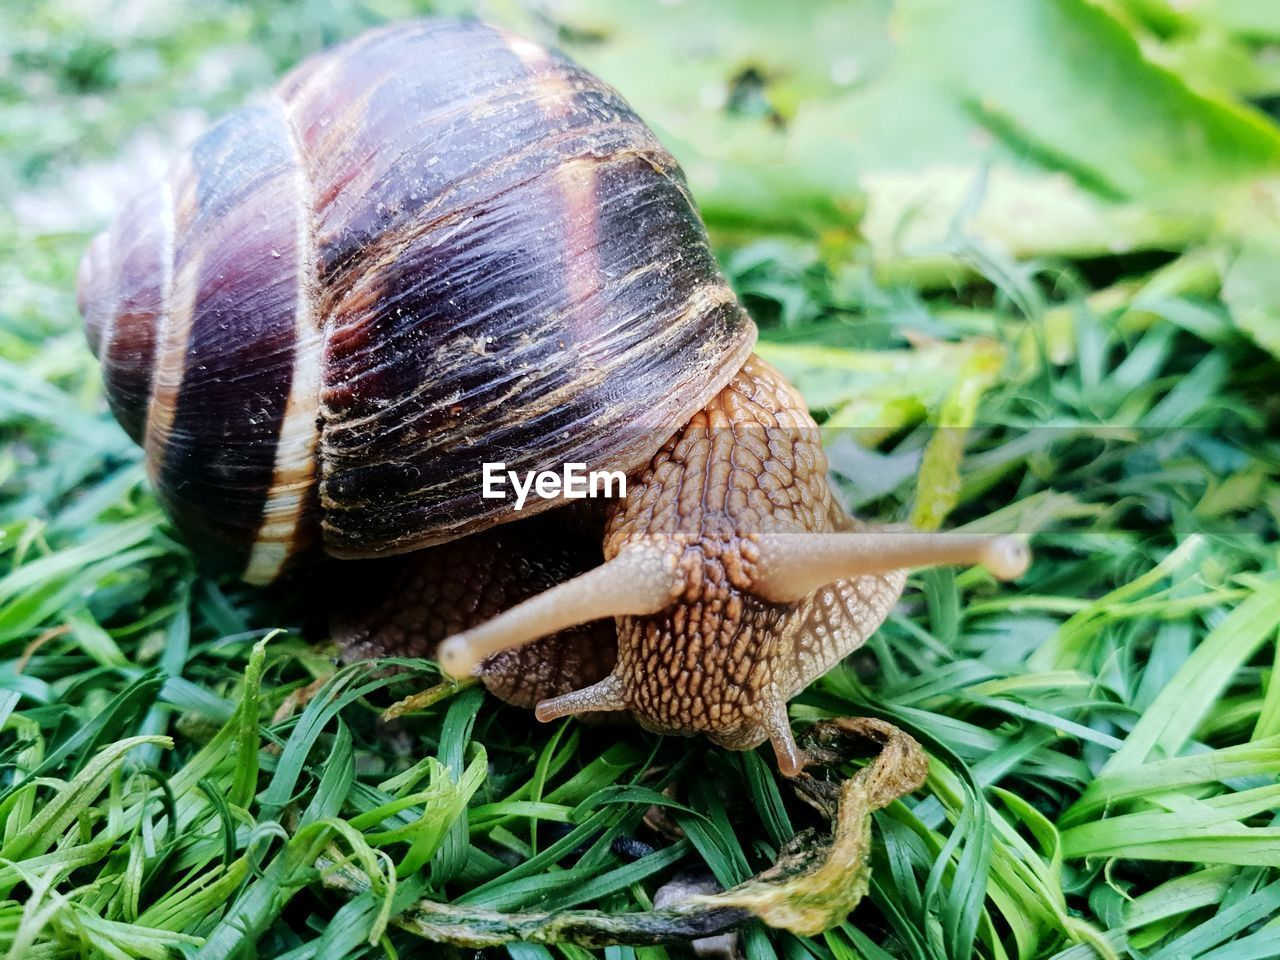 invertebrate, animal, animal themes, gastropod, mollusk, one animal, animals in the wild, animal wildlife, snail, close-up, shell, grass, animal shell, plant, nature, day, animal body part, no people, green color, focus on foreground, crawling